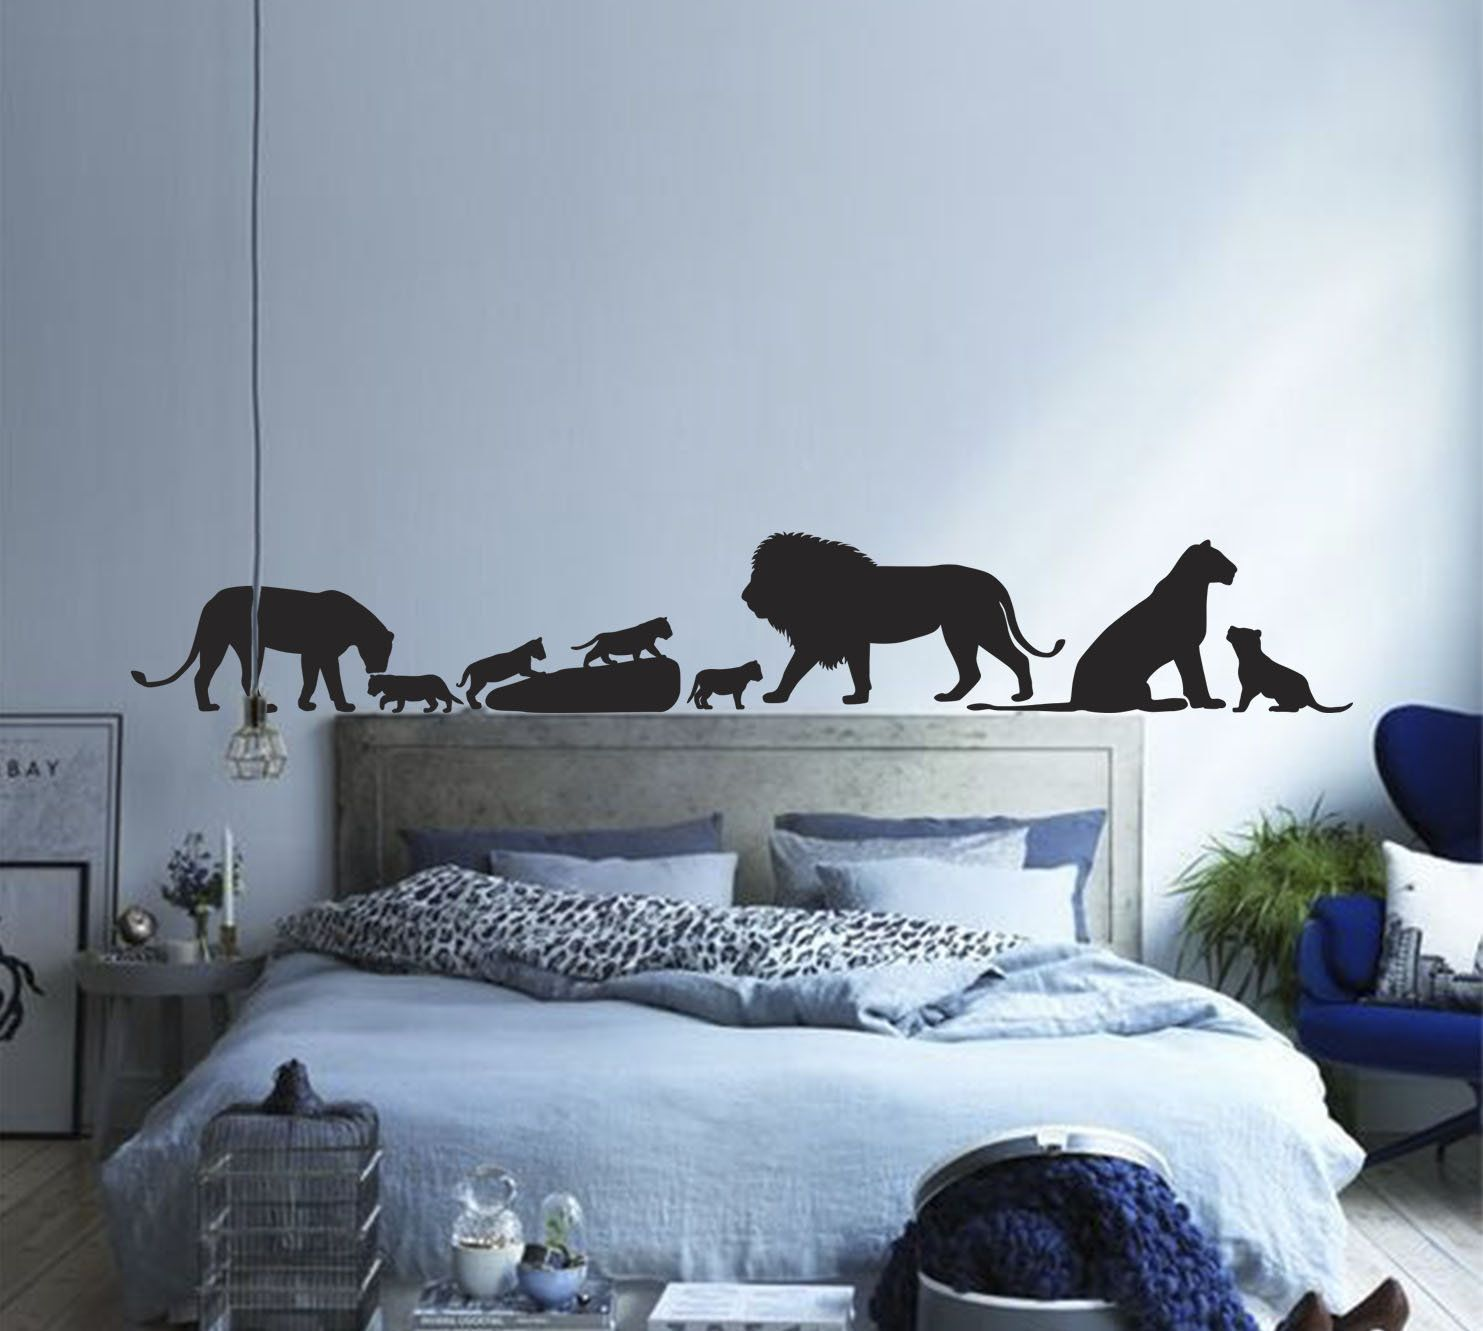 Lion King Wall Decal, Lion Family Decal, Lion Wall Sticker,